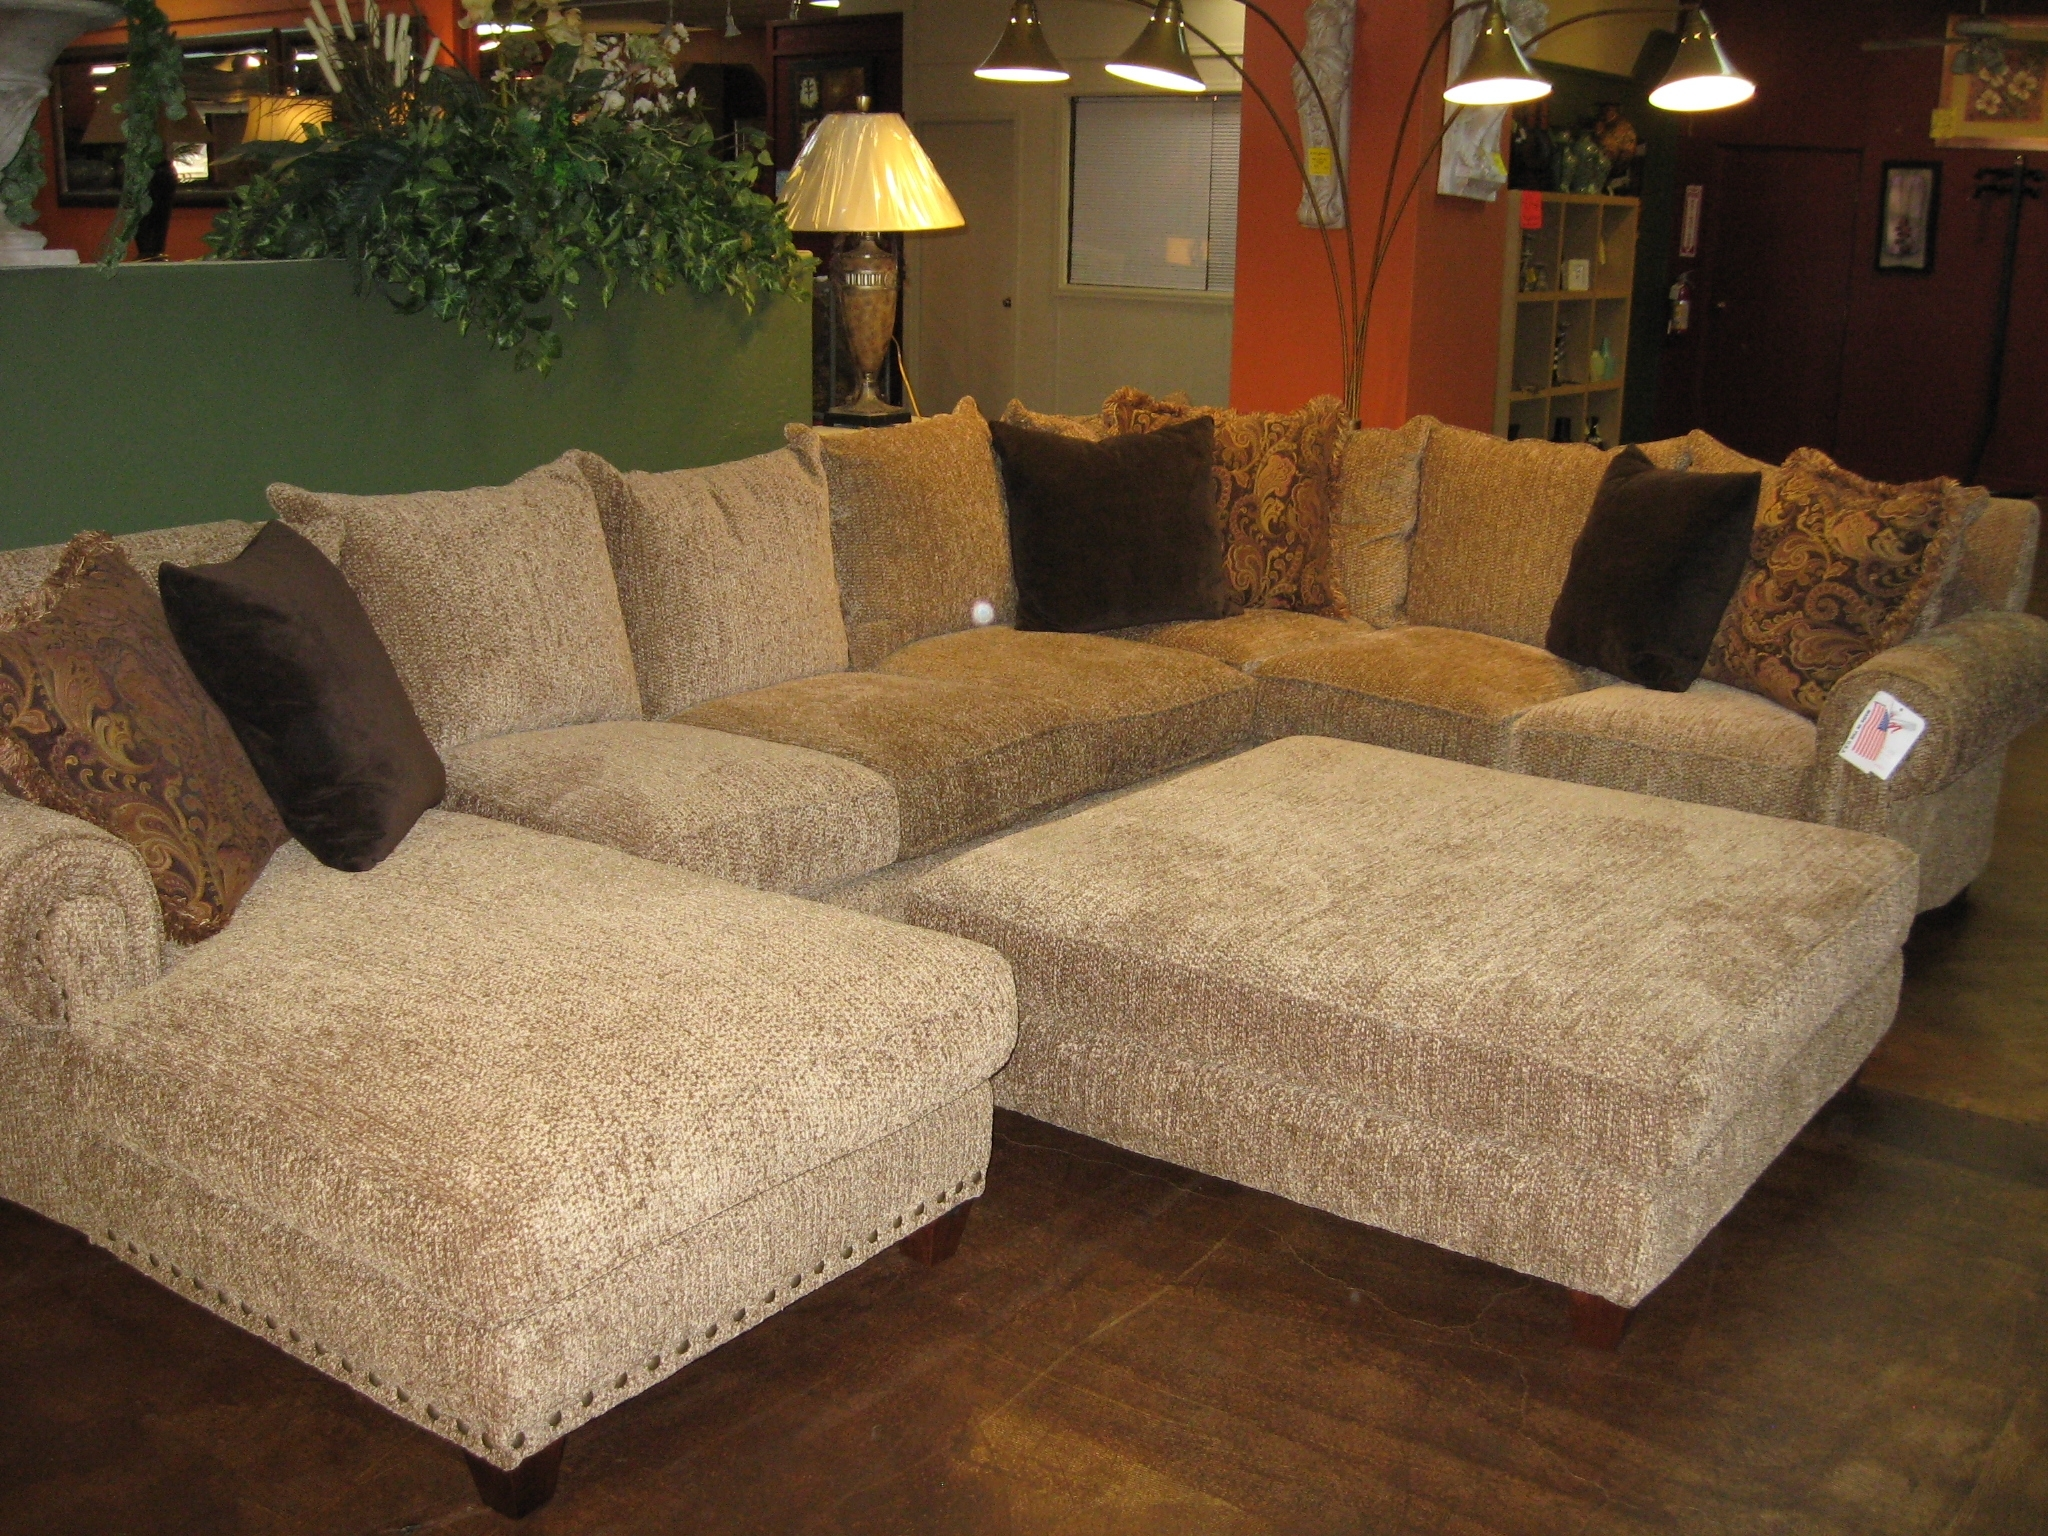 Elegant Large Sectional Sofa With Ottoman 52 With Additional Modern with Sofas With Large Ottoman (Image 3 of 10)